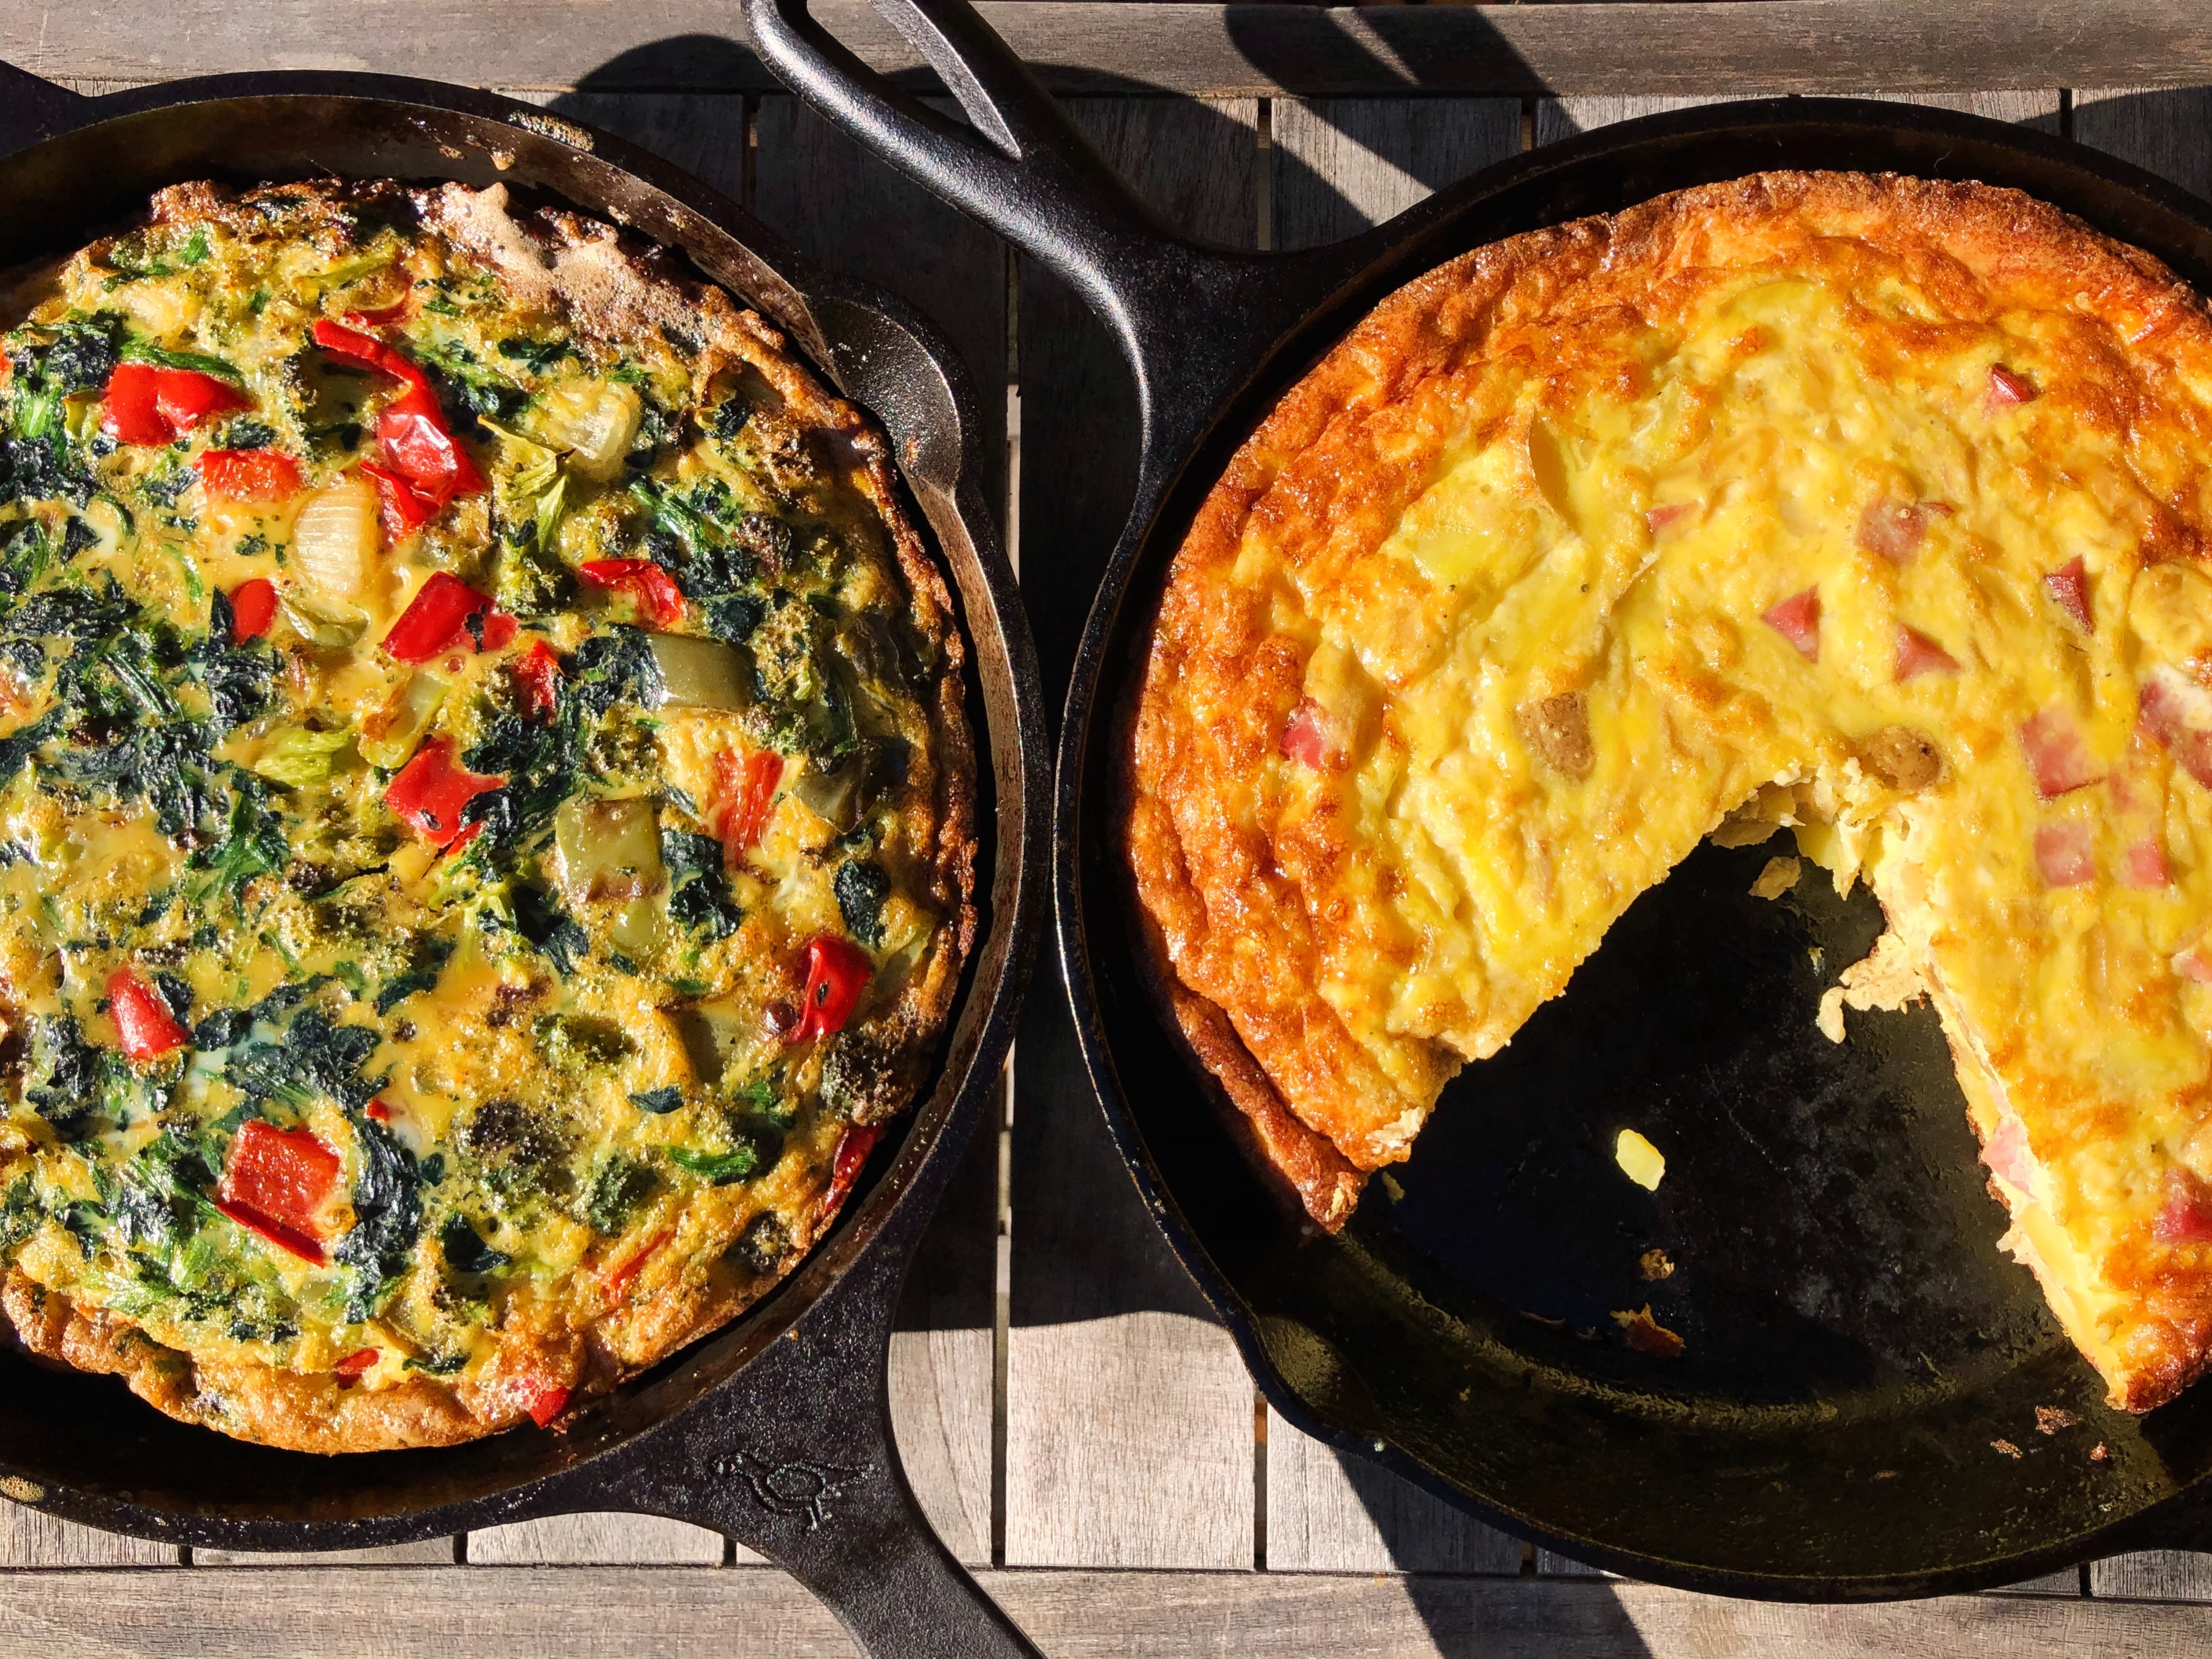 Overhead photo shows two frittatas in cast iron pans, one of them with a slice missing.